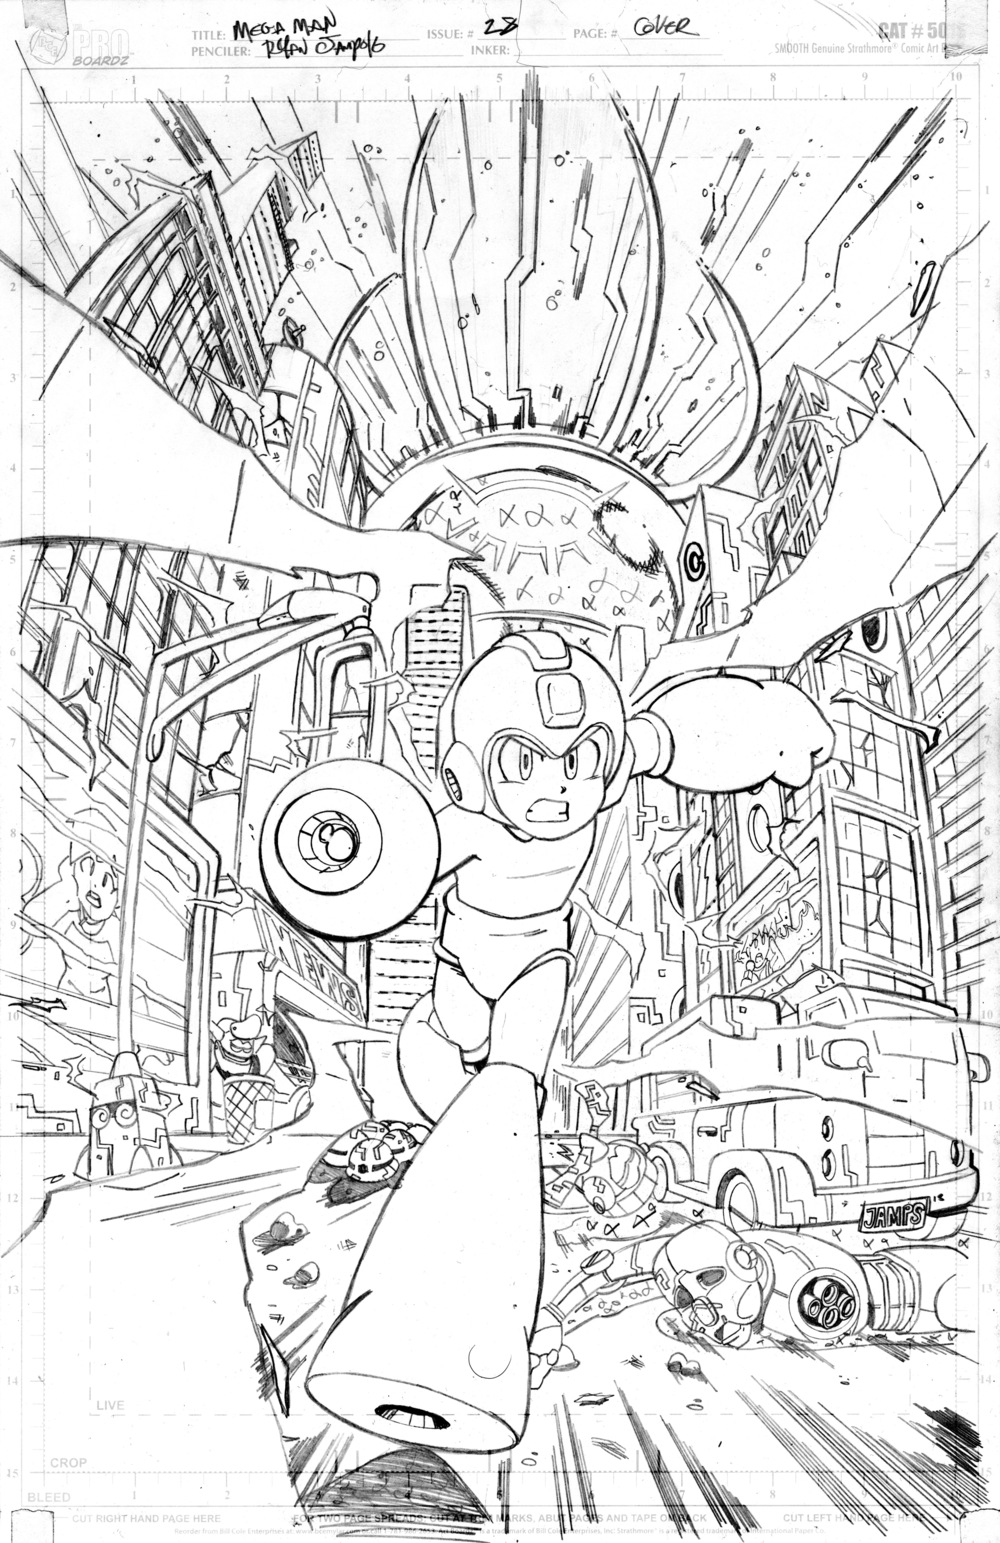 Mega Man Issue #28 Cover Pencils